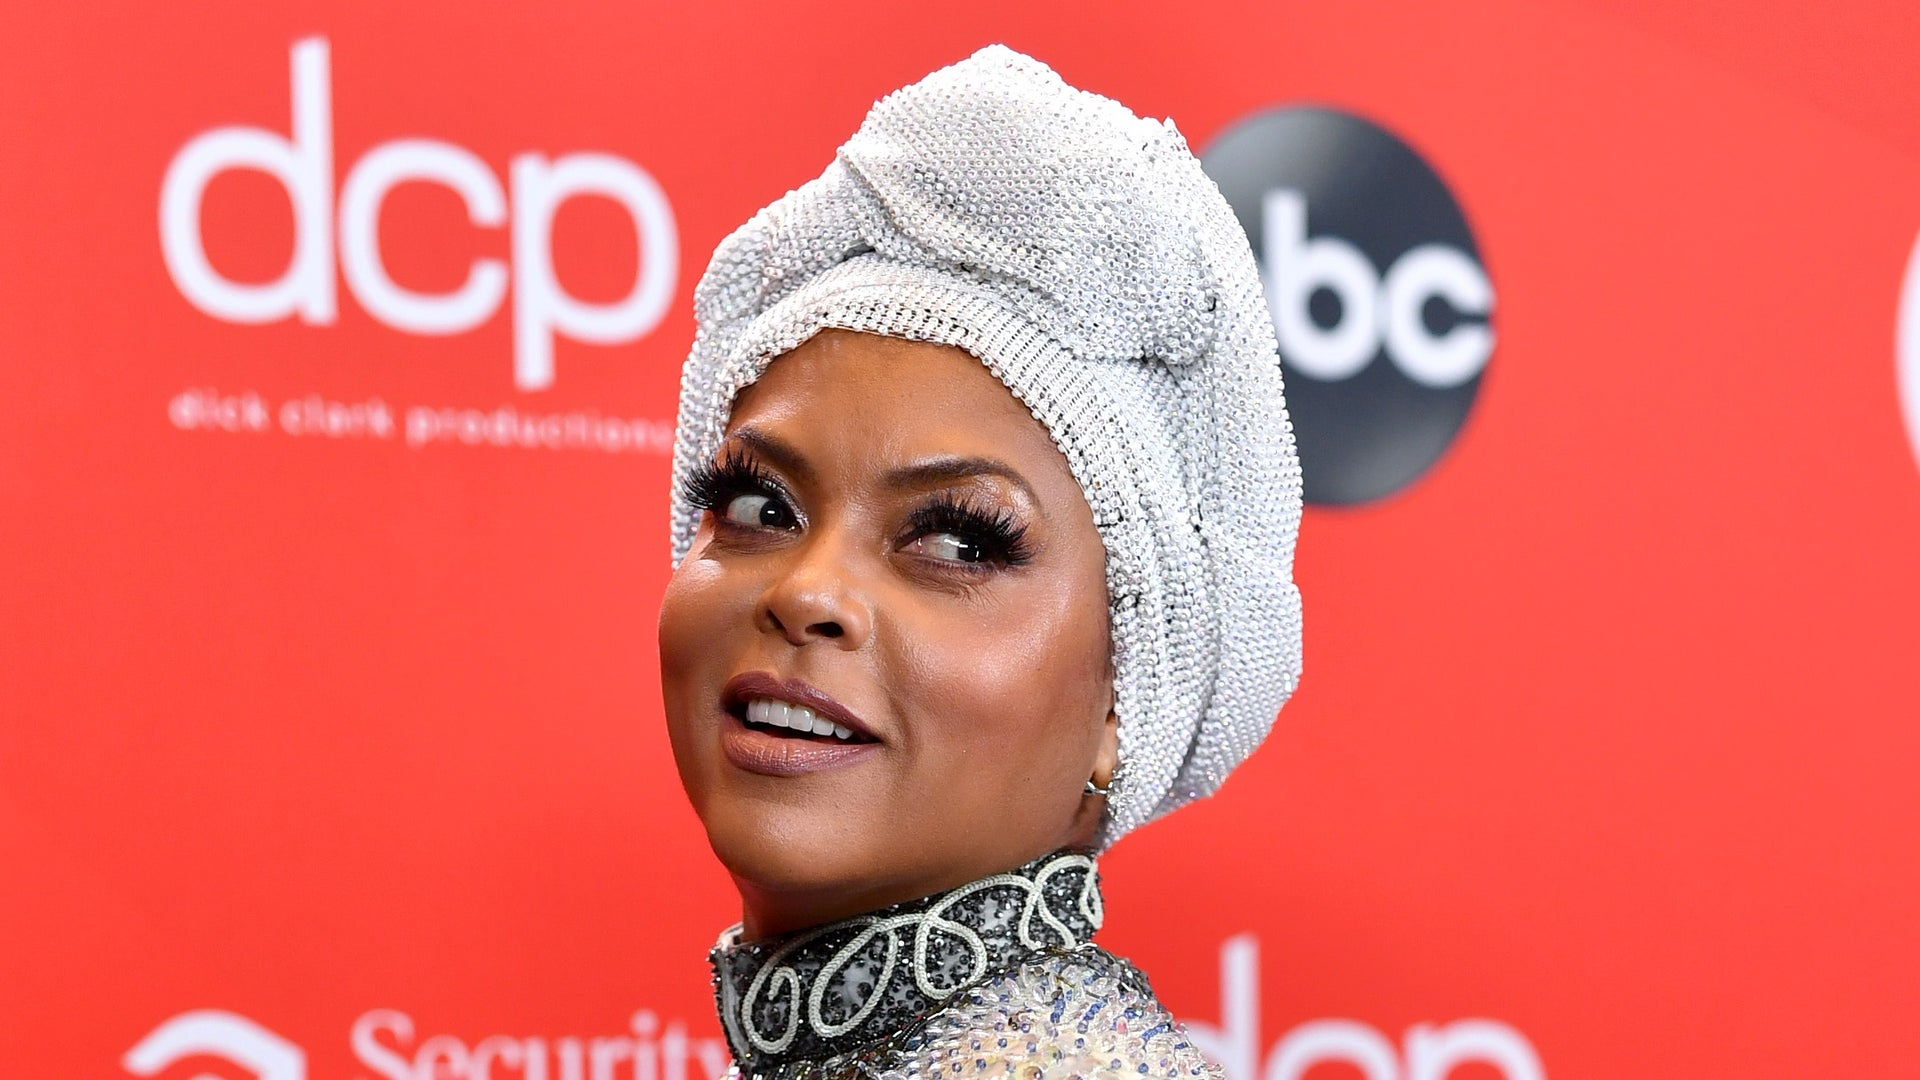 Taraji P. Henson's AMA Makeup Look Had To Complement A Whopping 10 Outfit Changes